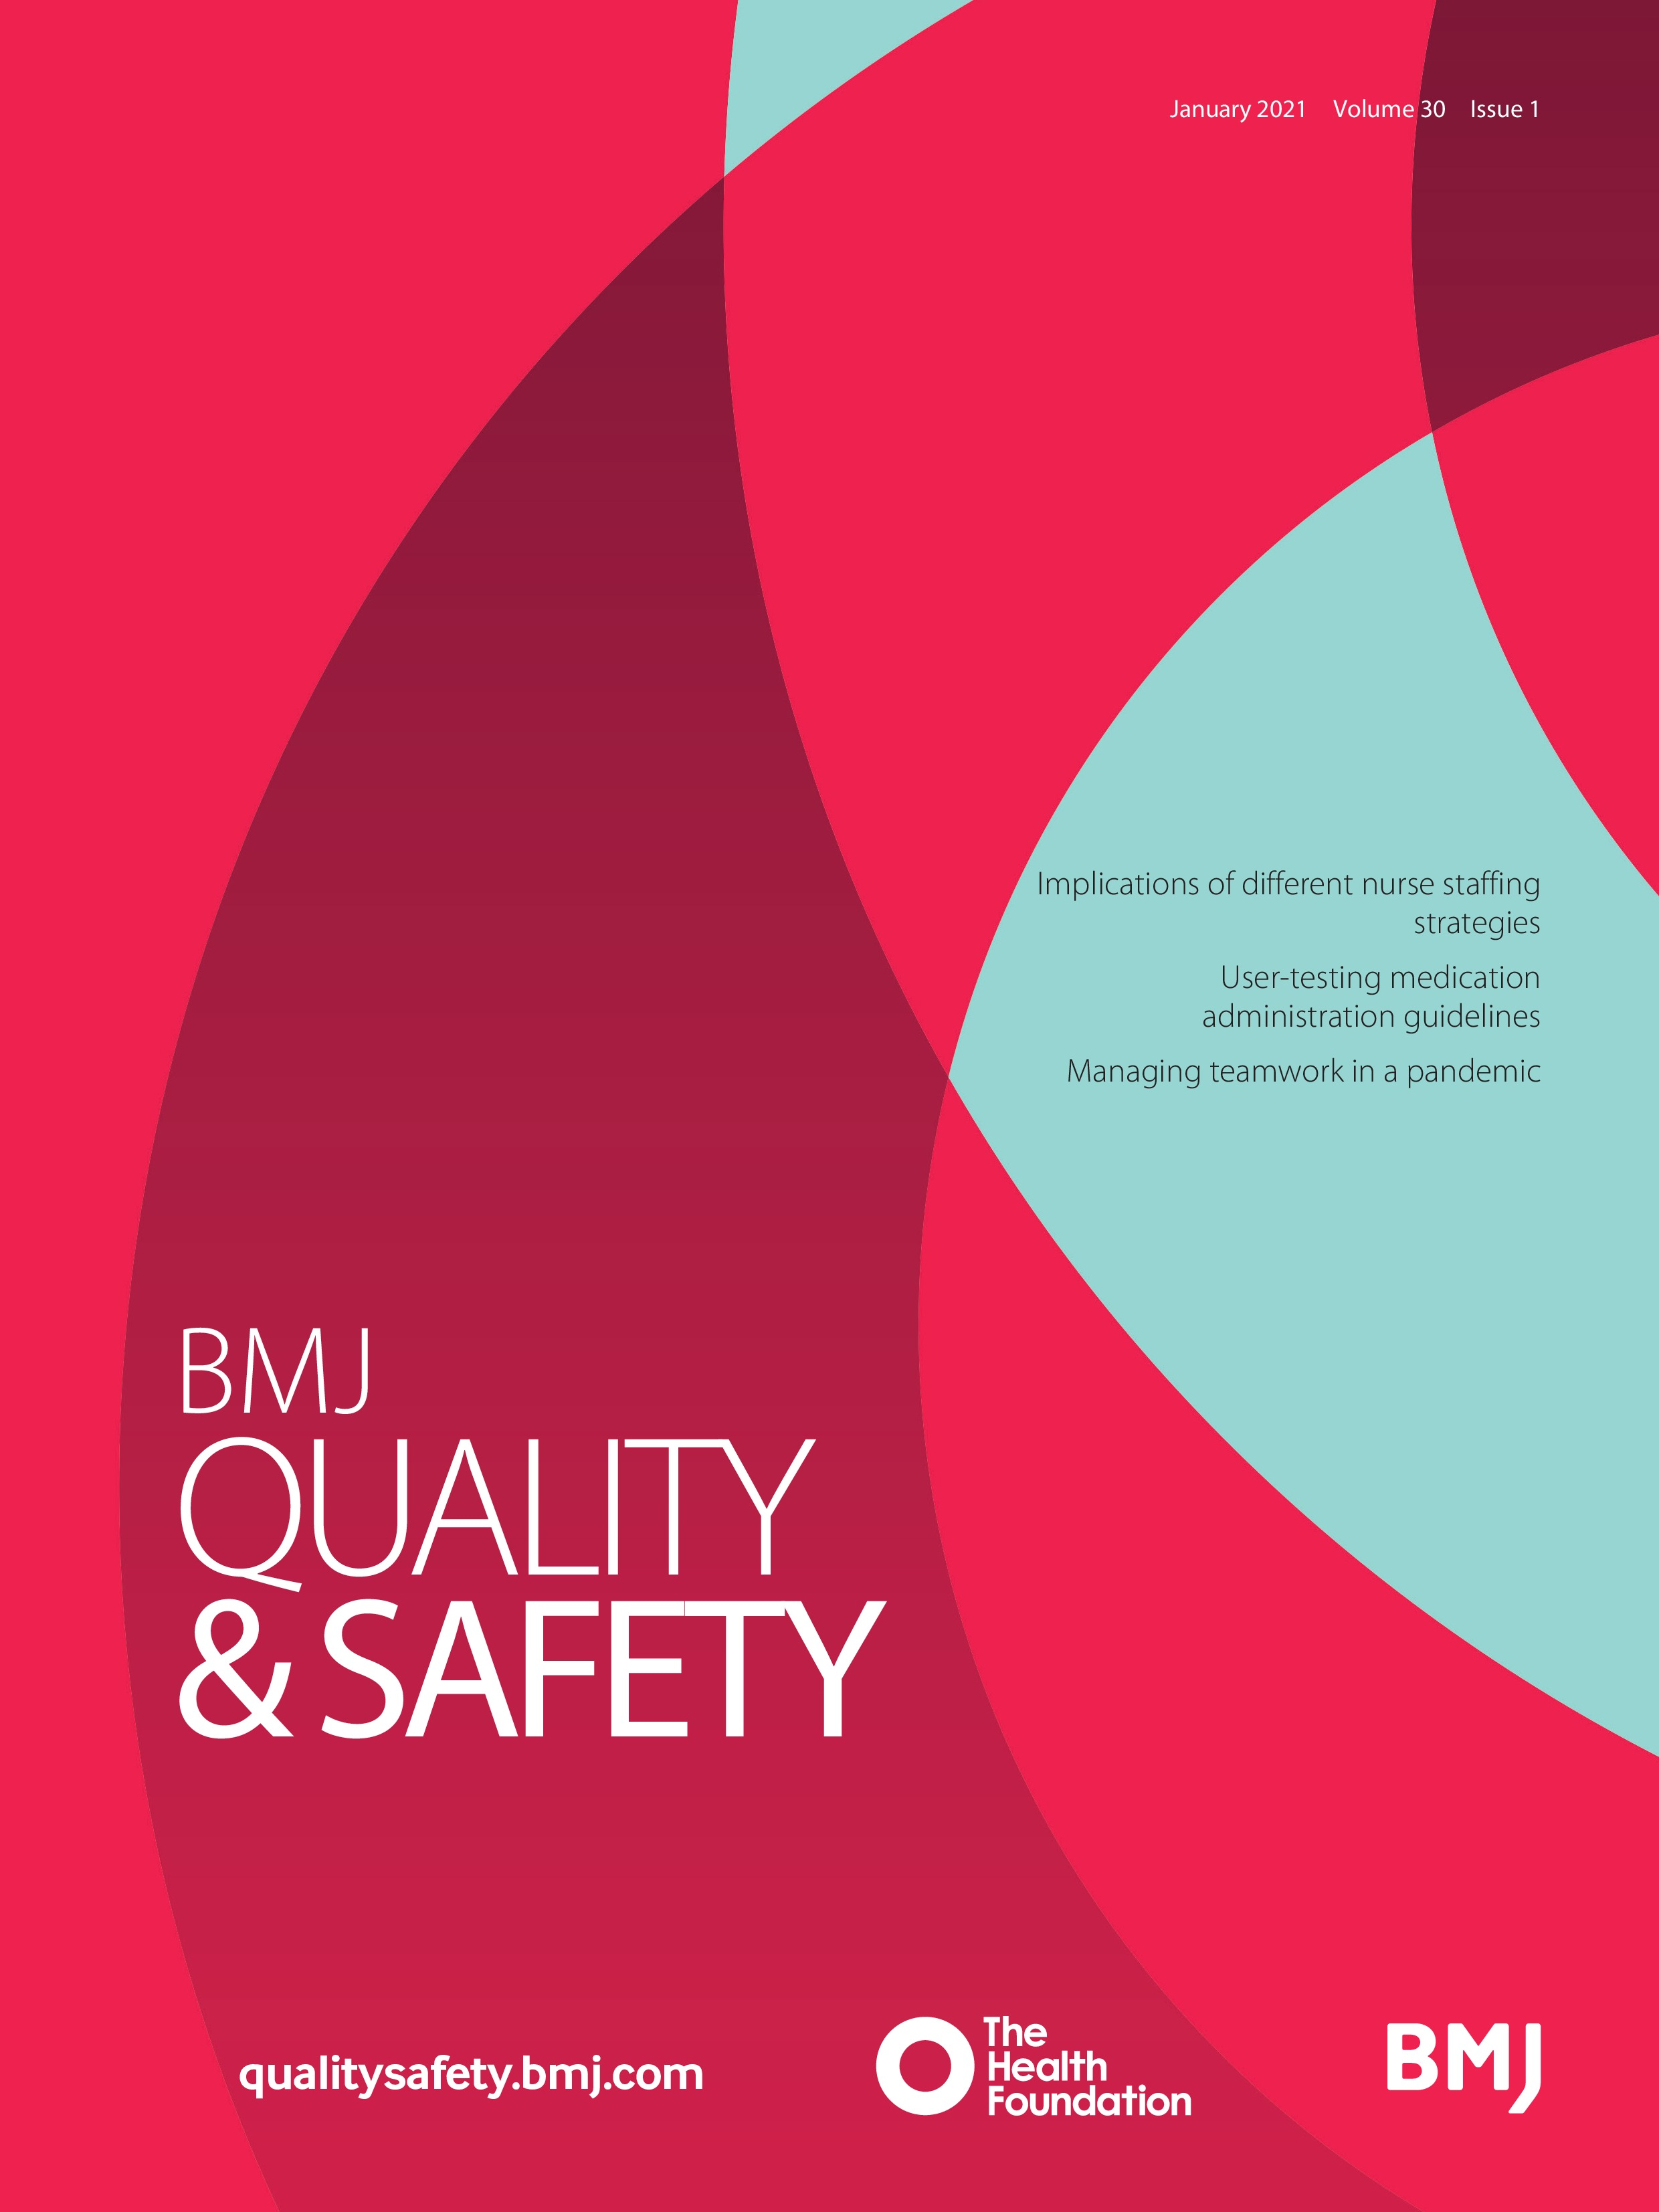 Costs And Consequences Of Using Average Demand To Plan Baseline Nurse  Staffing Levels: A Computer Simulation Study | BMJ Quality & Safety